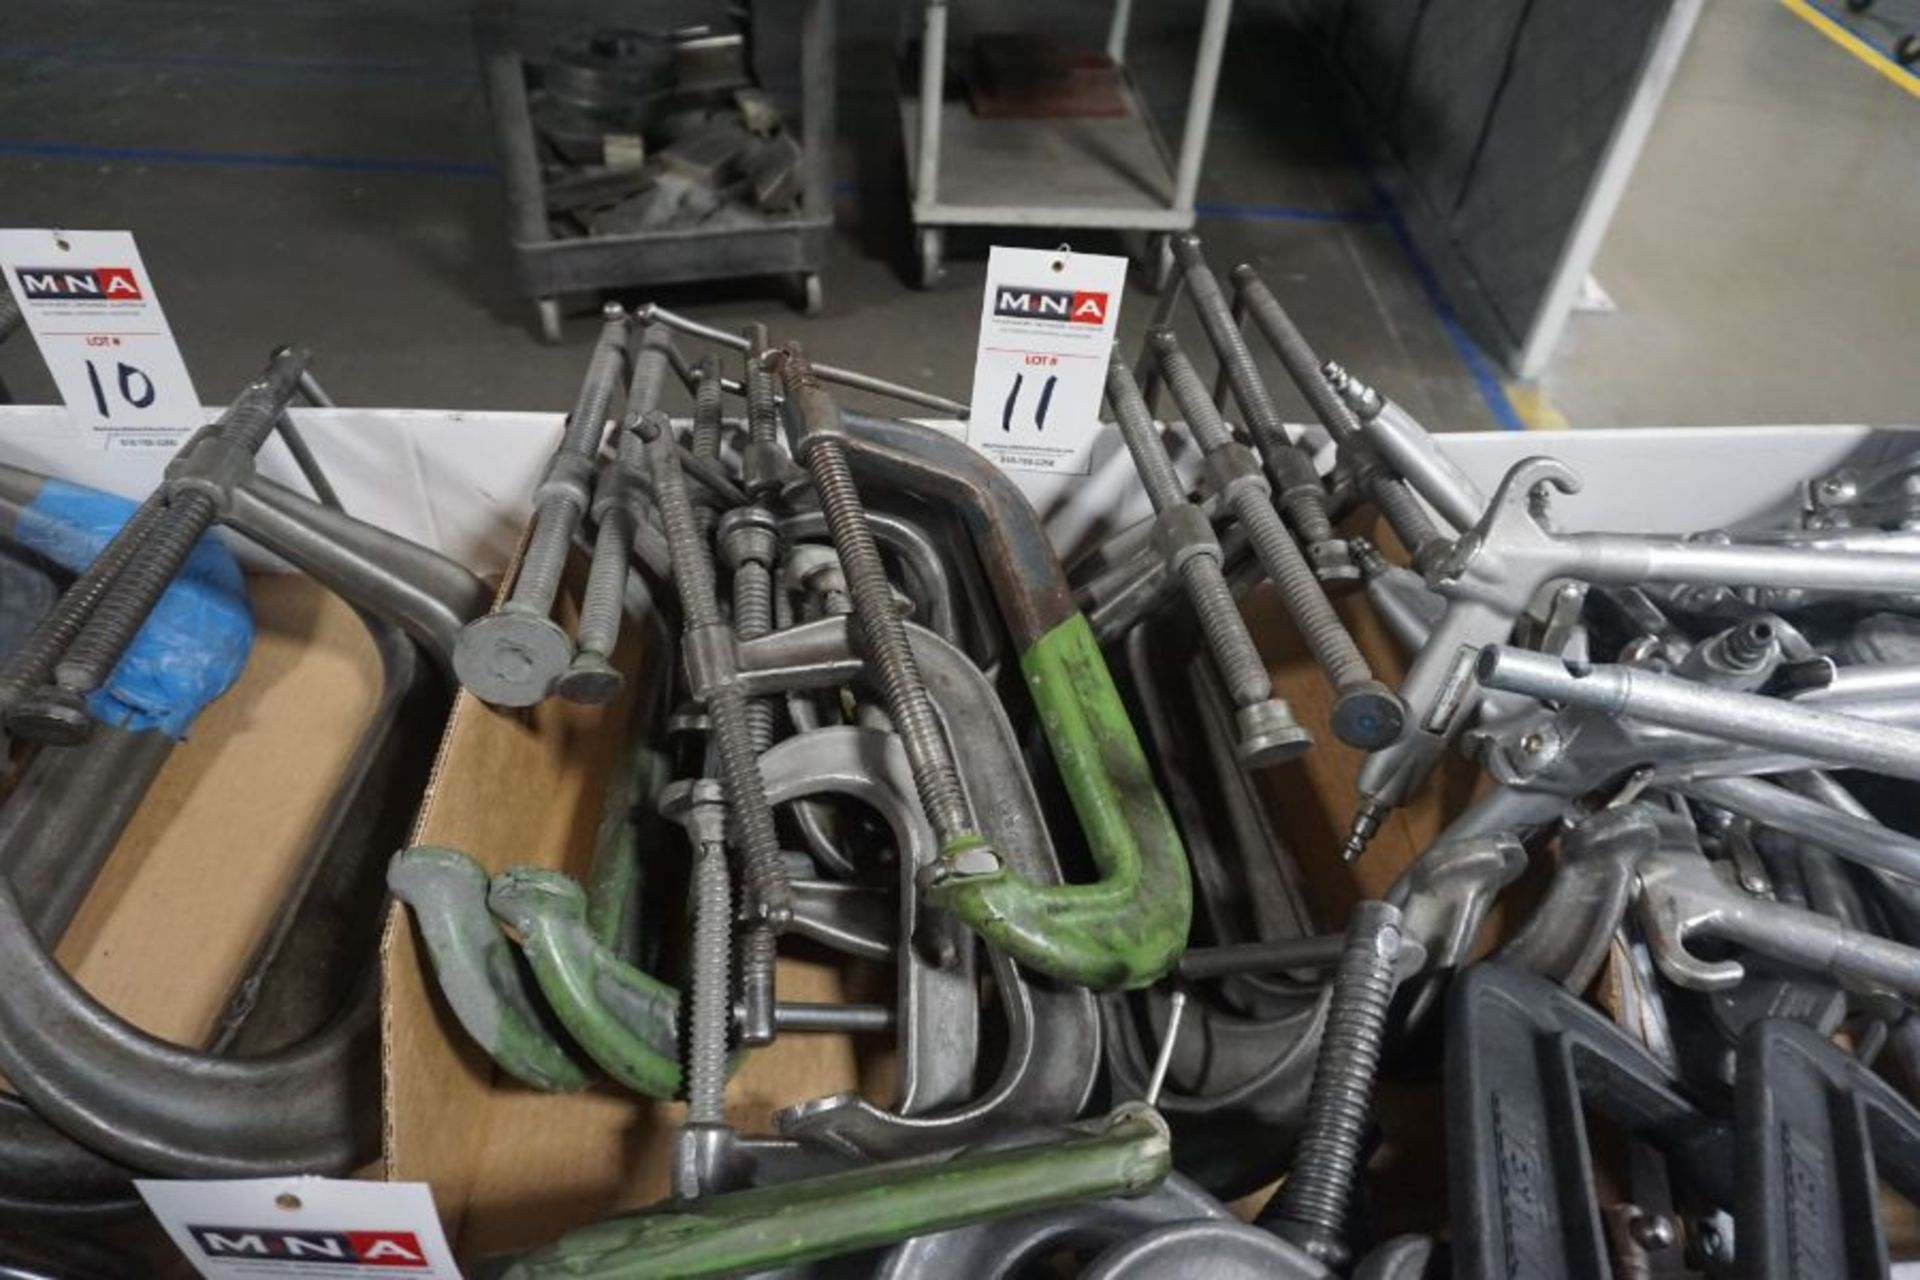 C - Clamps